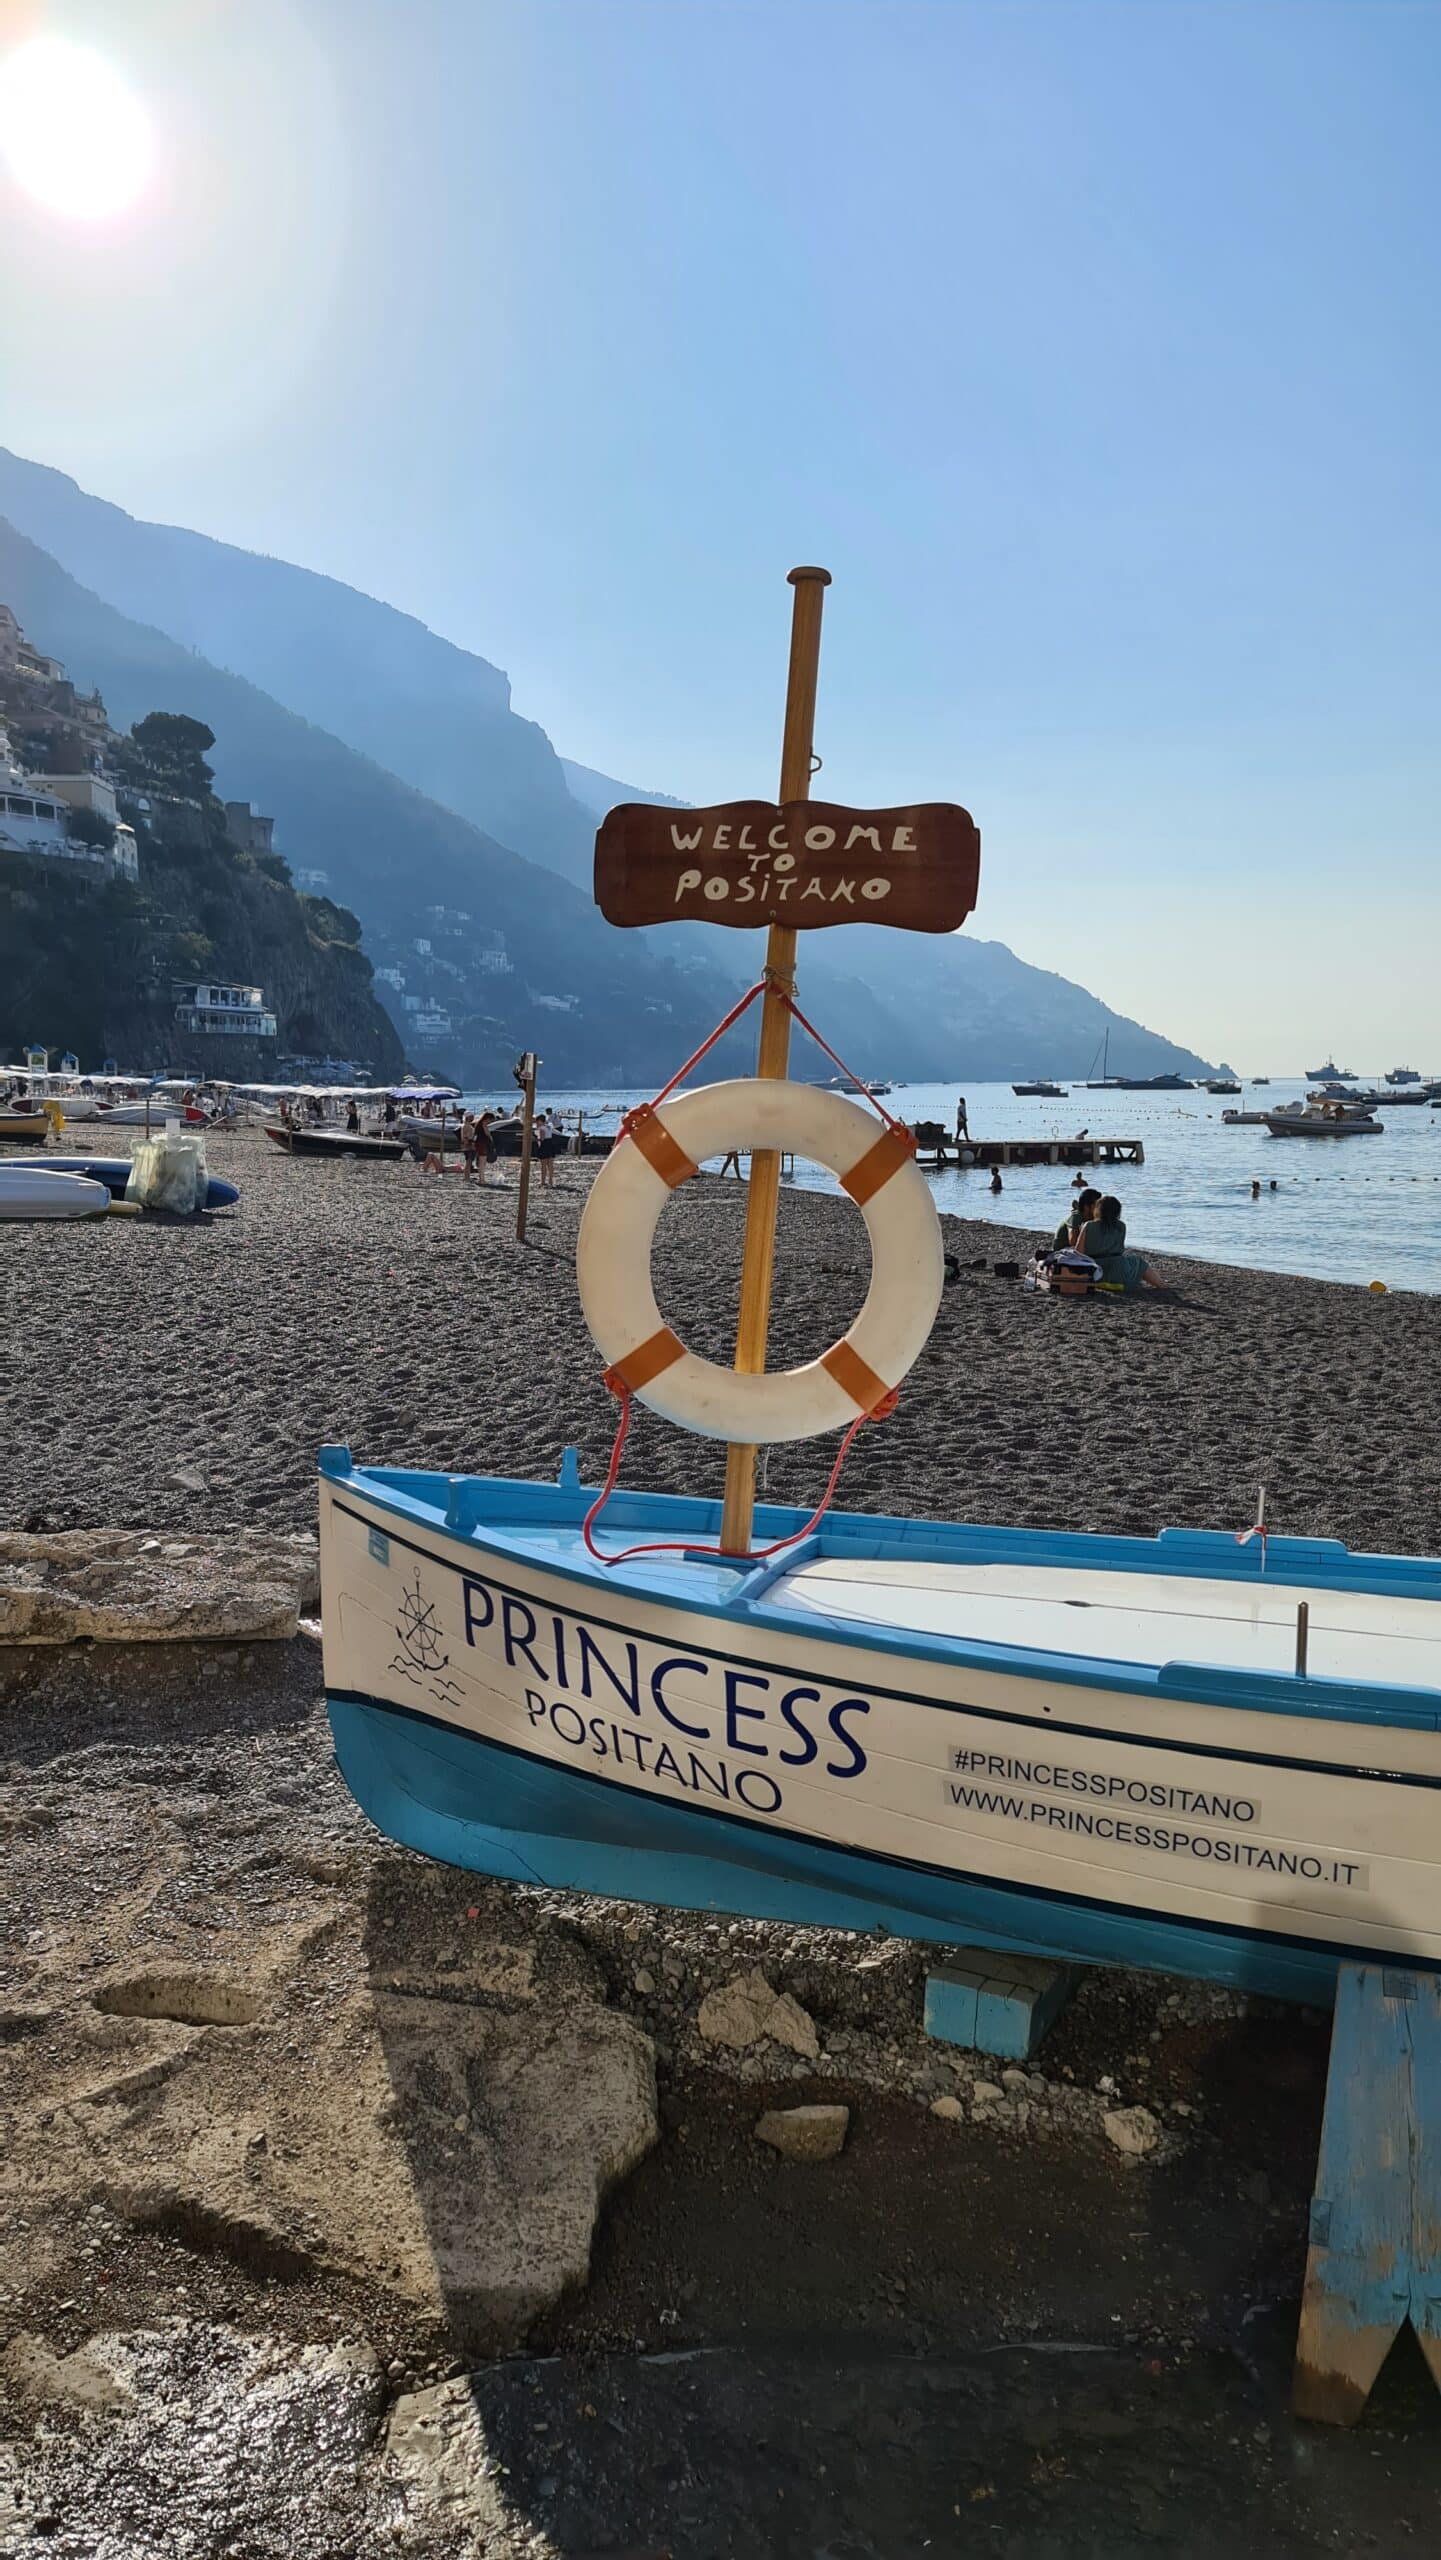 Positano Italy: 10 unforgettable Things to do in Positano & Positano beach 6